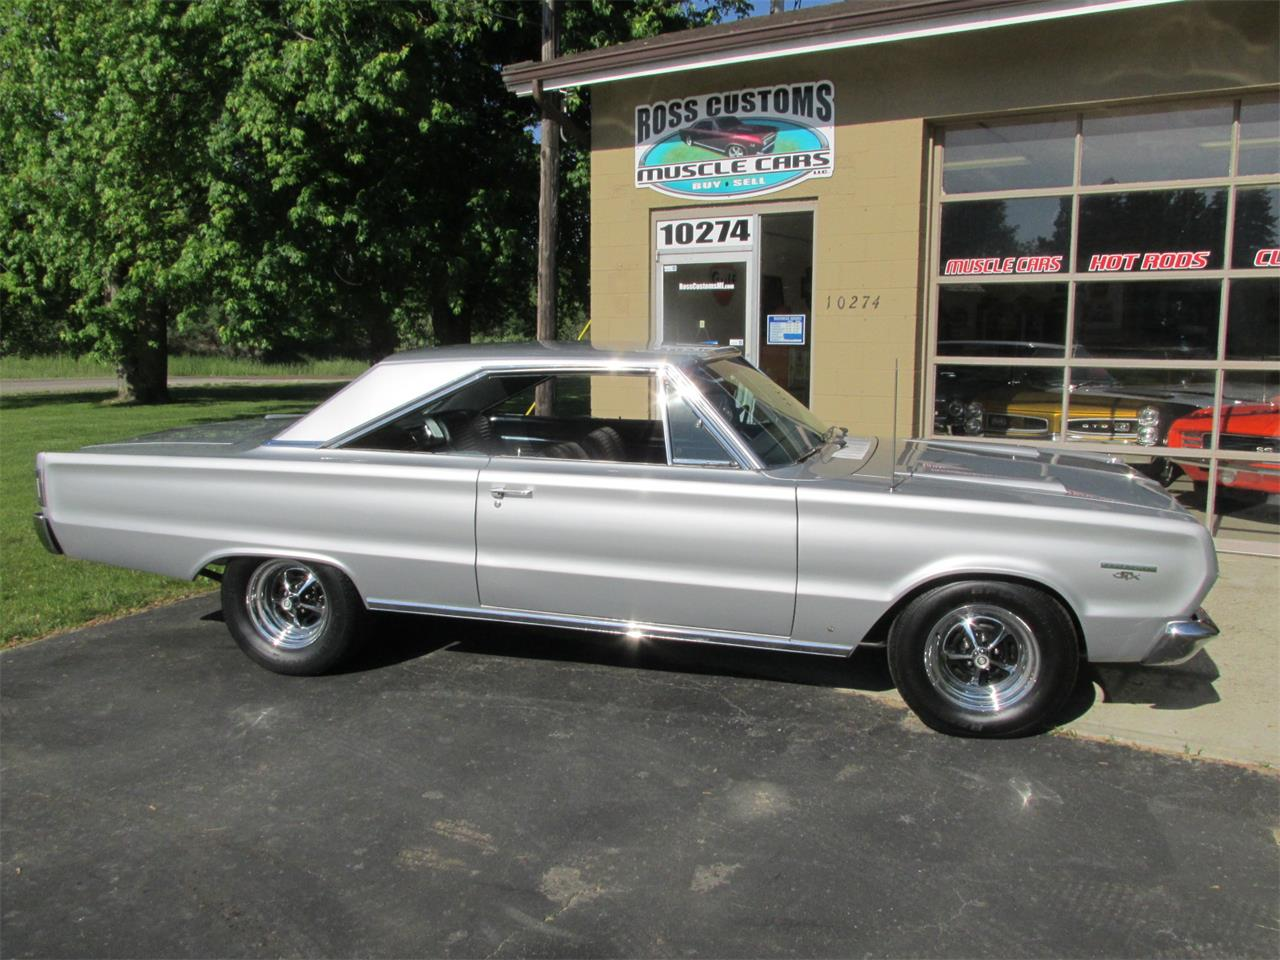 Large Picture of '67 Plymouth GTX - $41,900.00 Offered by Ross Custom Muscle Cars LLC - QCBG